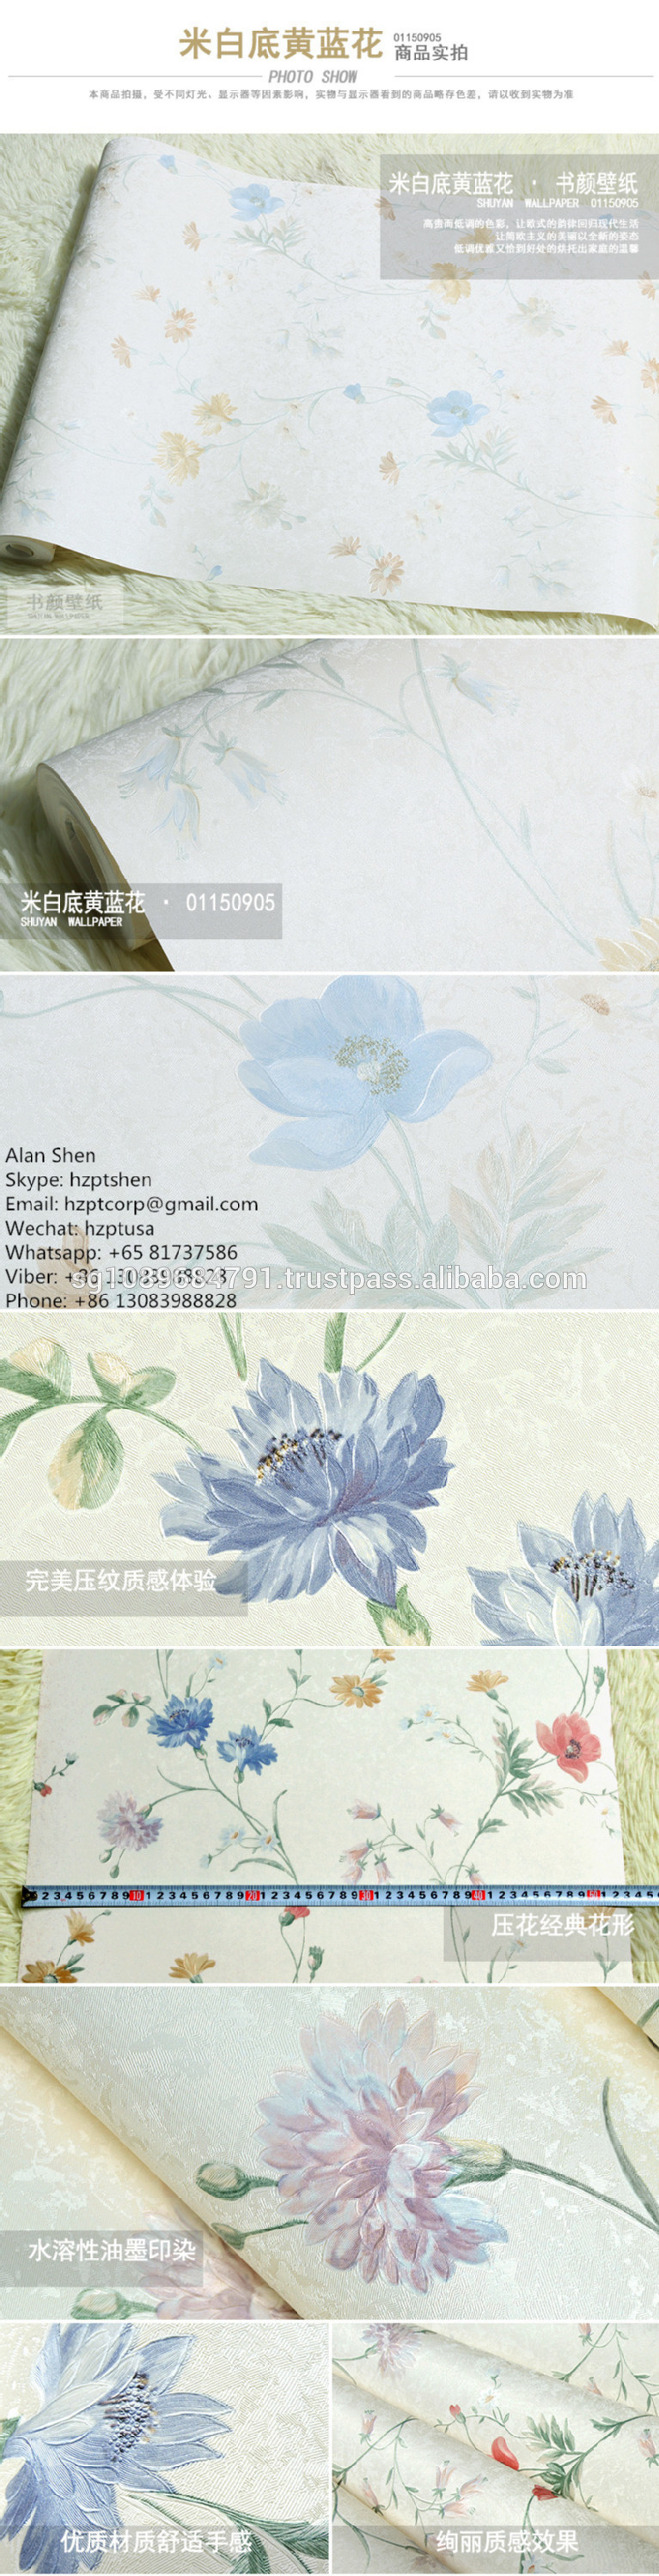 self adhesive wallpaper/stocklot wallcovering/decorative wallpaper for restarea/wallpaper